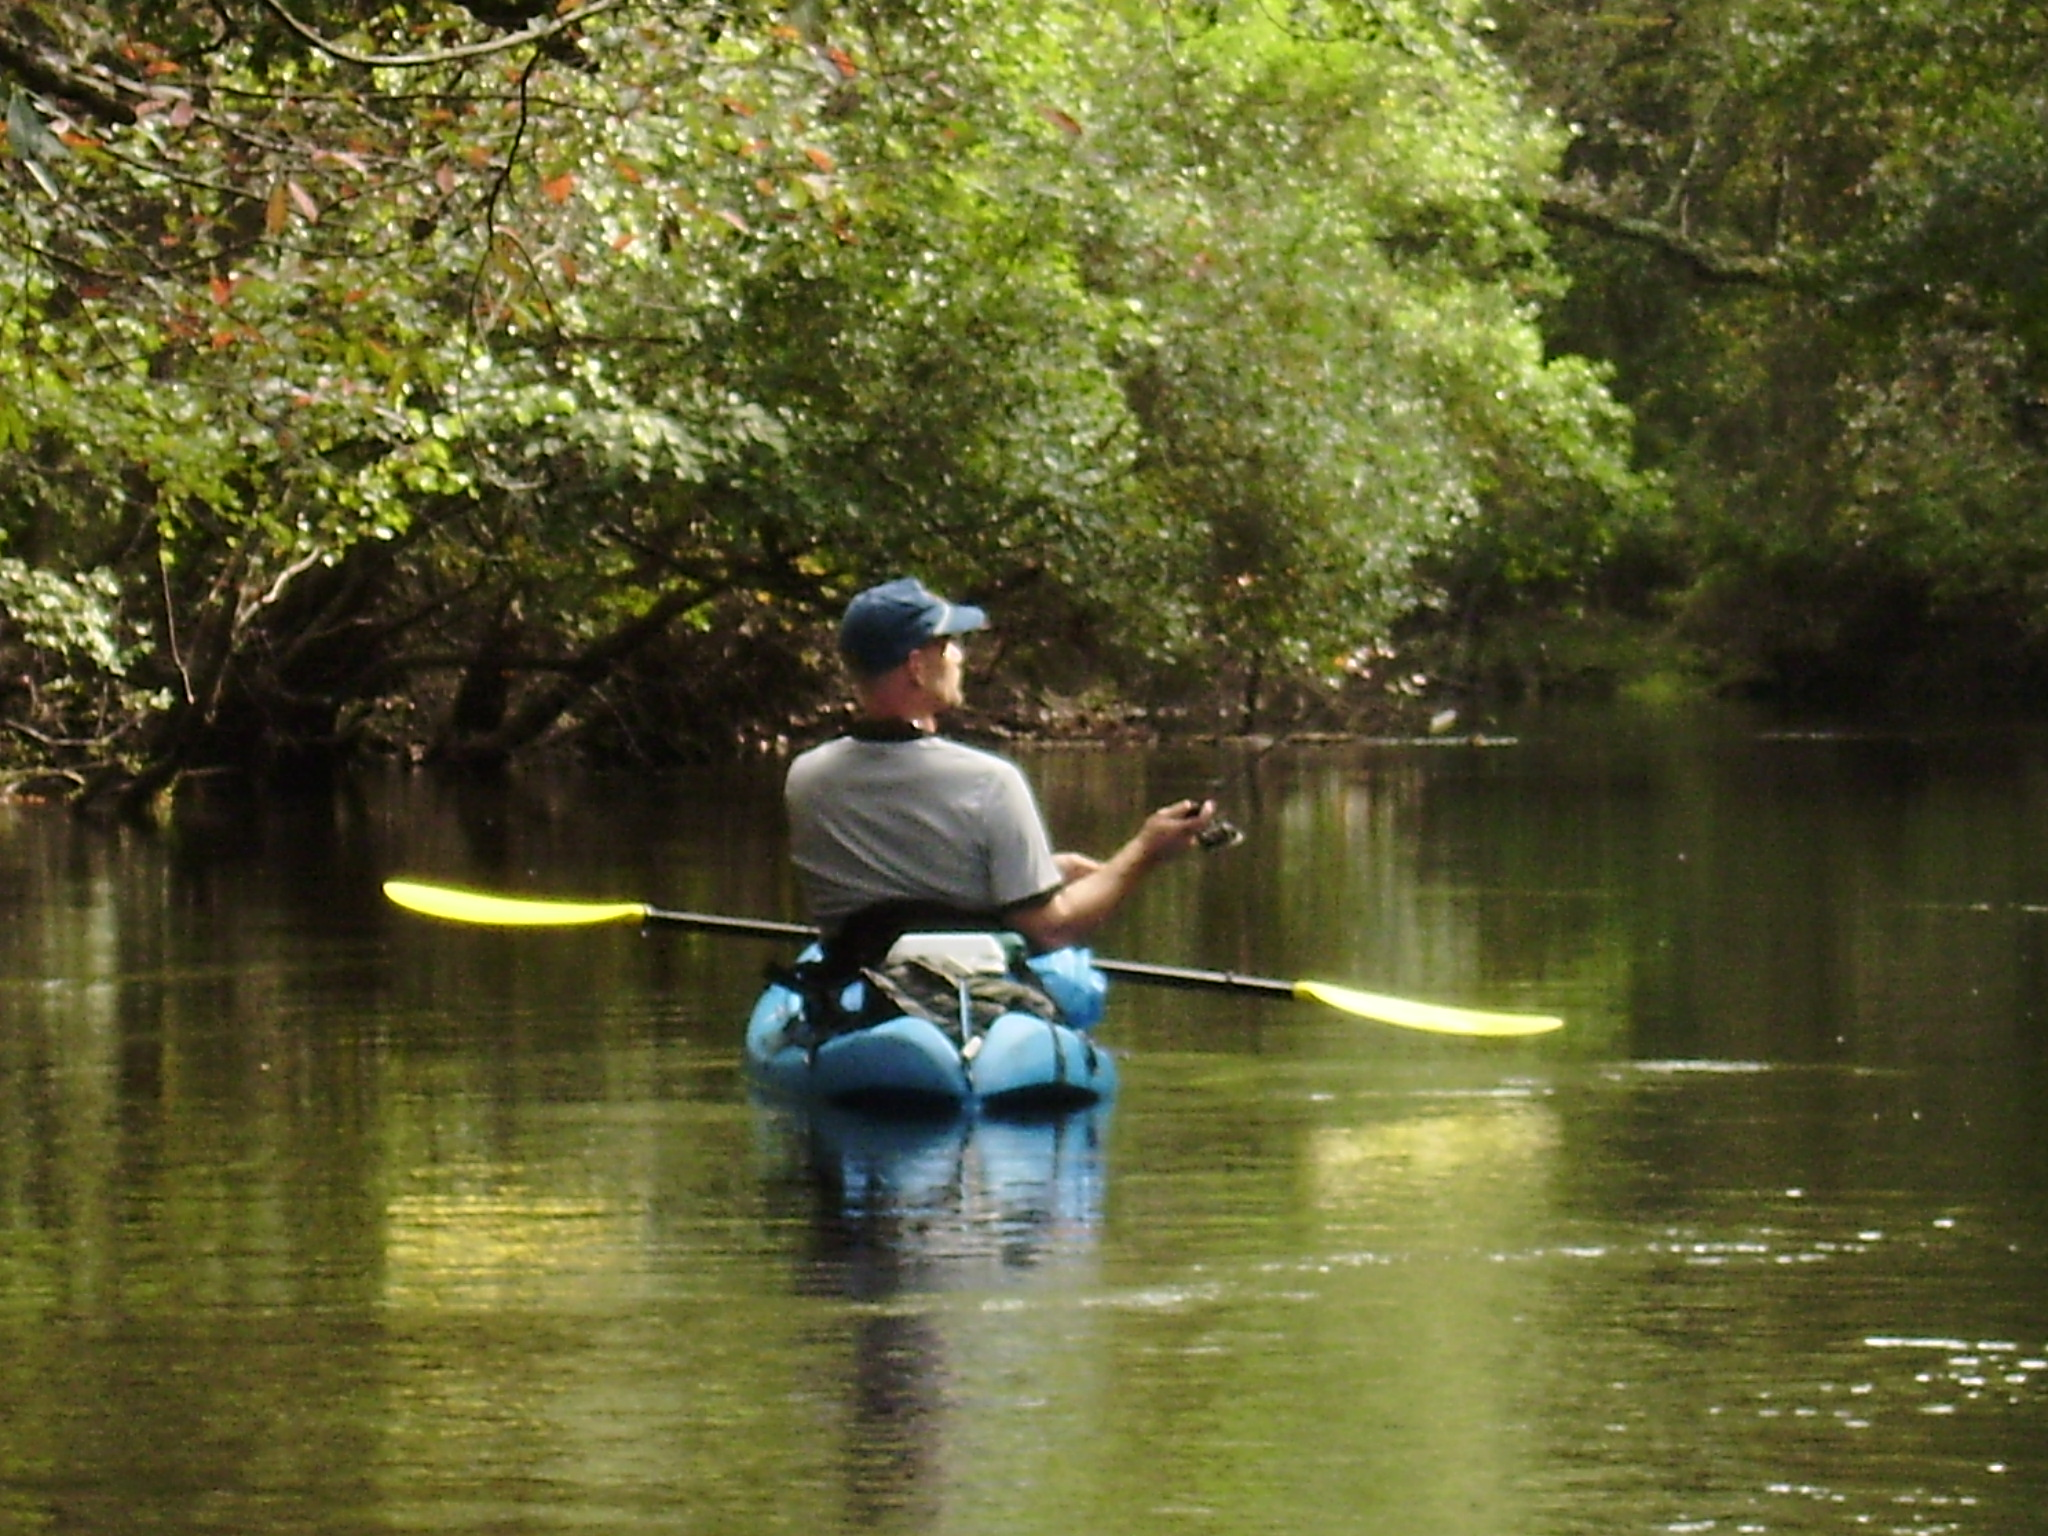 Riveco glamping coussac bonneval canoeing for Fish camping boat